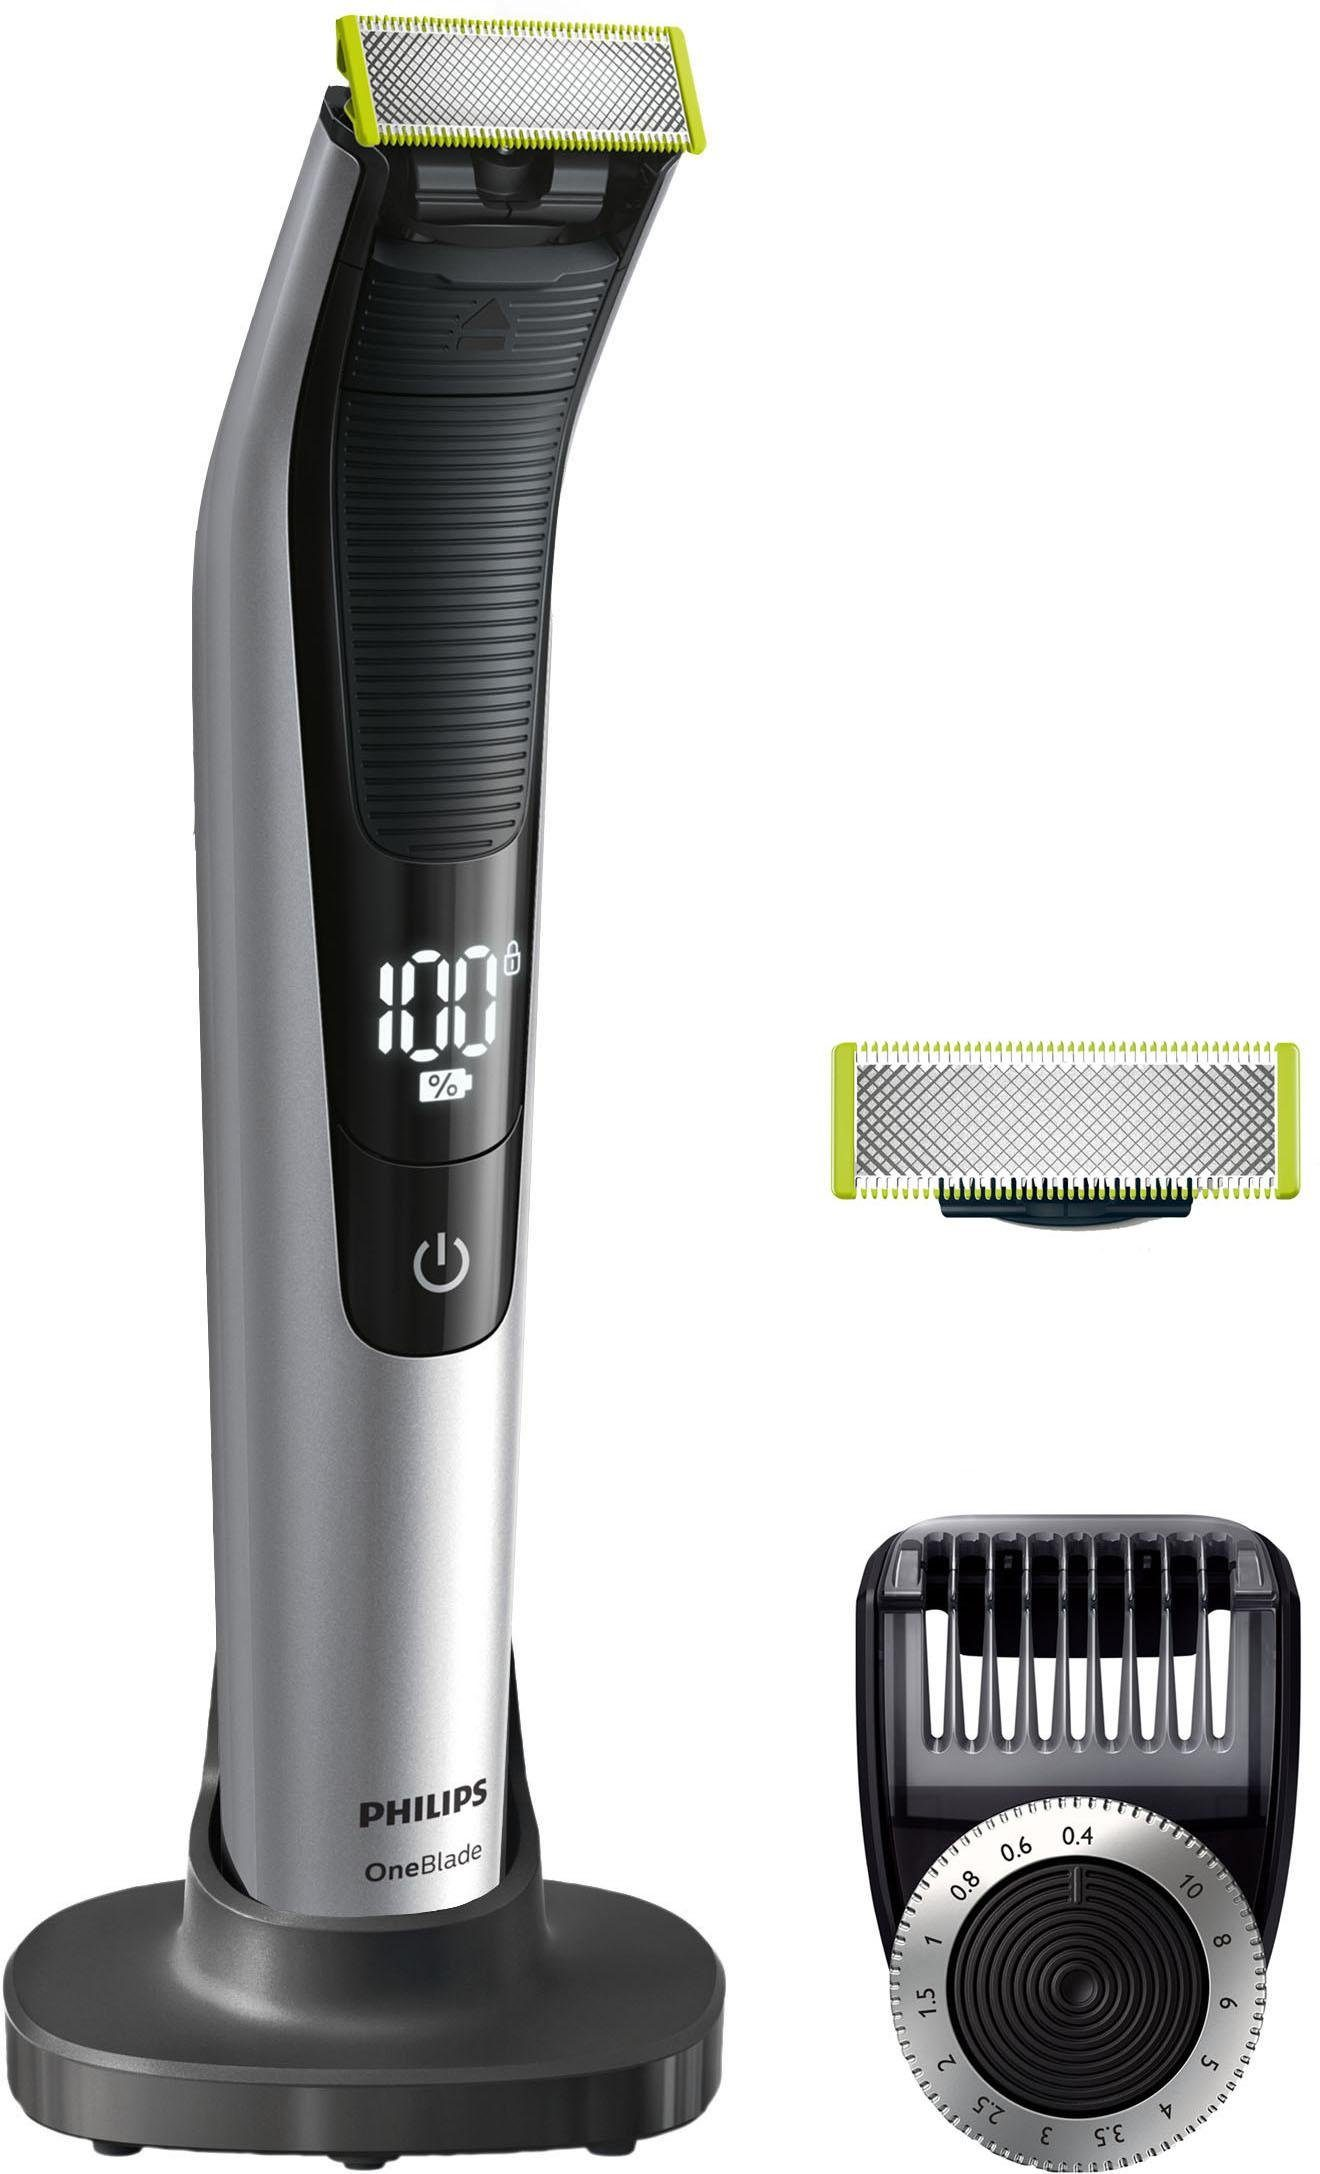 Philips Herrenrasierer OneBlade Pro QP6520/60, Akku, Wet&Dry, LED-Display, Präzisions-Trimmer, Ersatzklinge